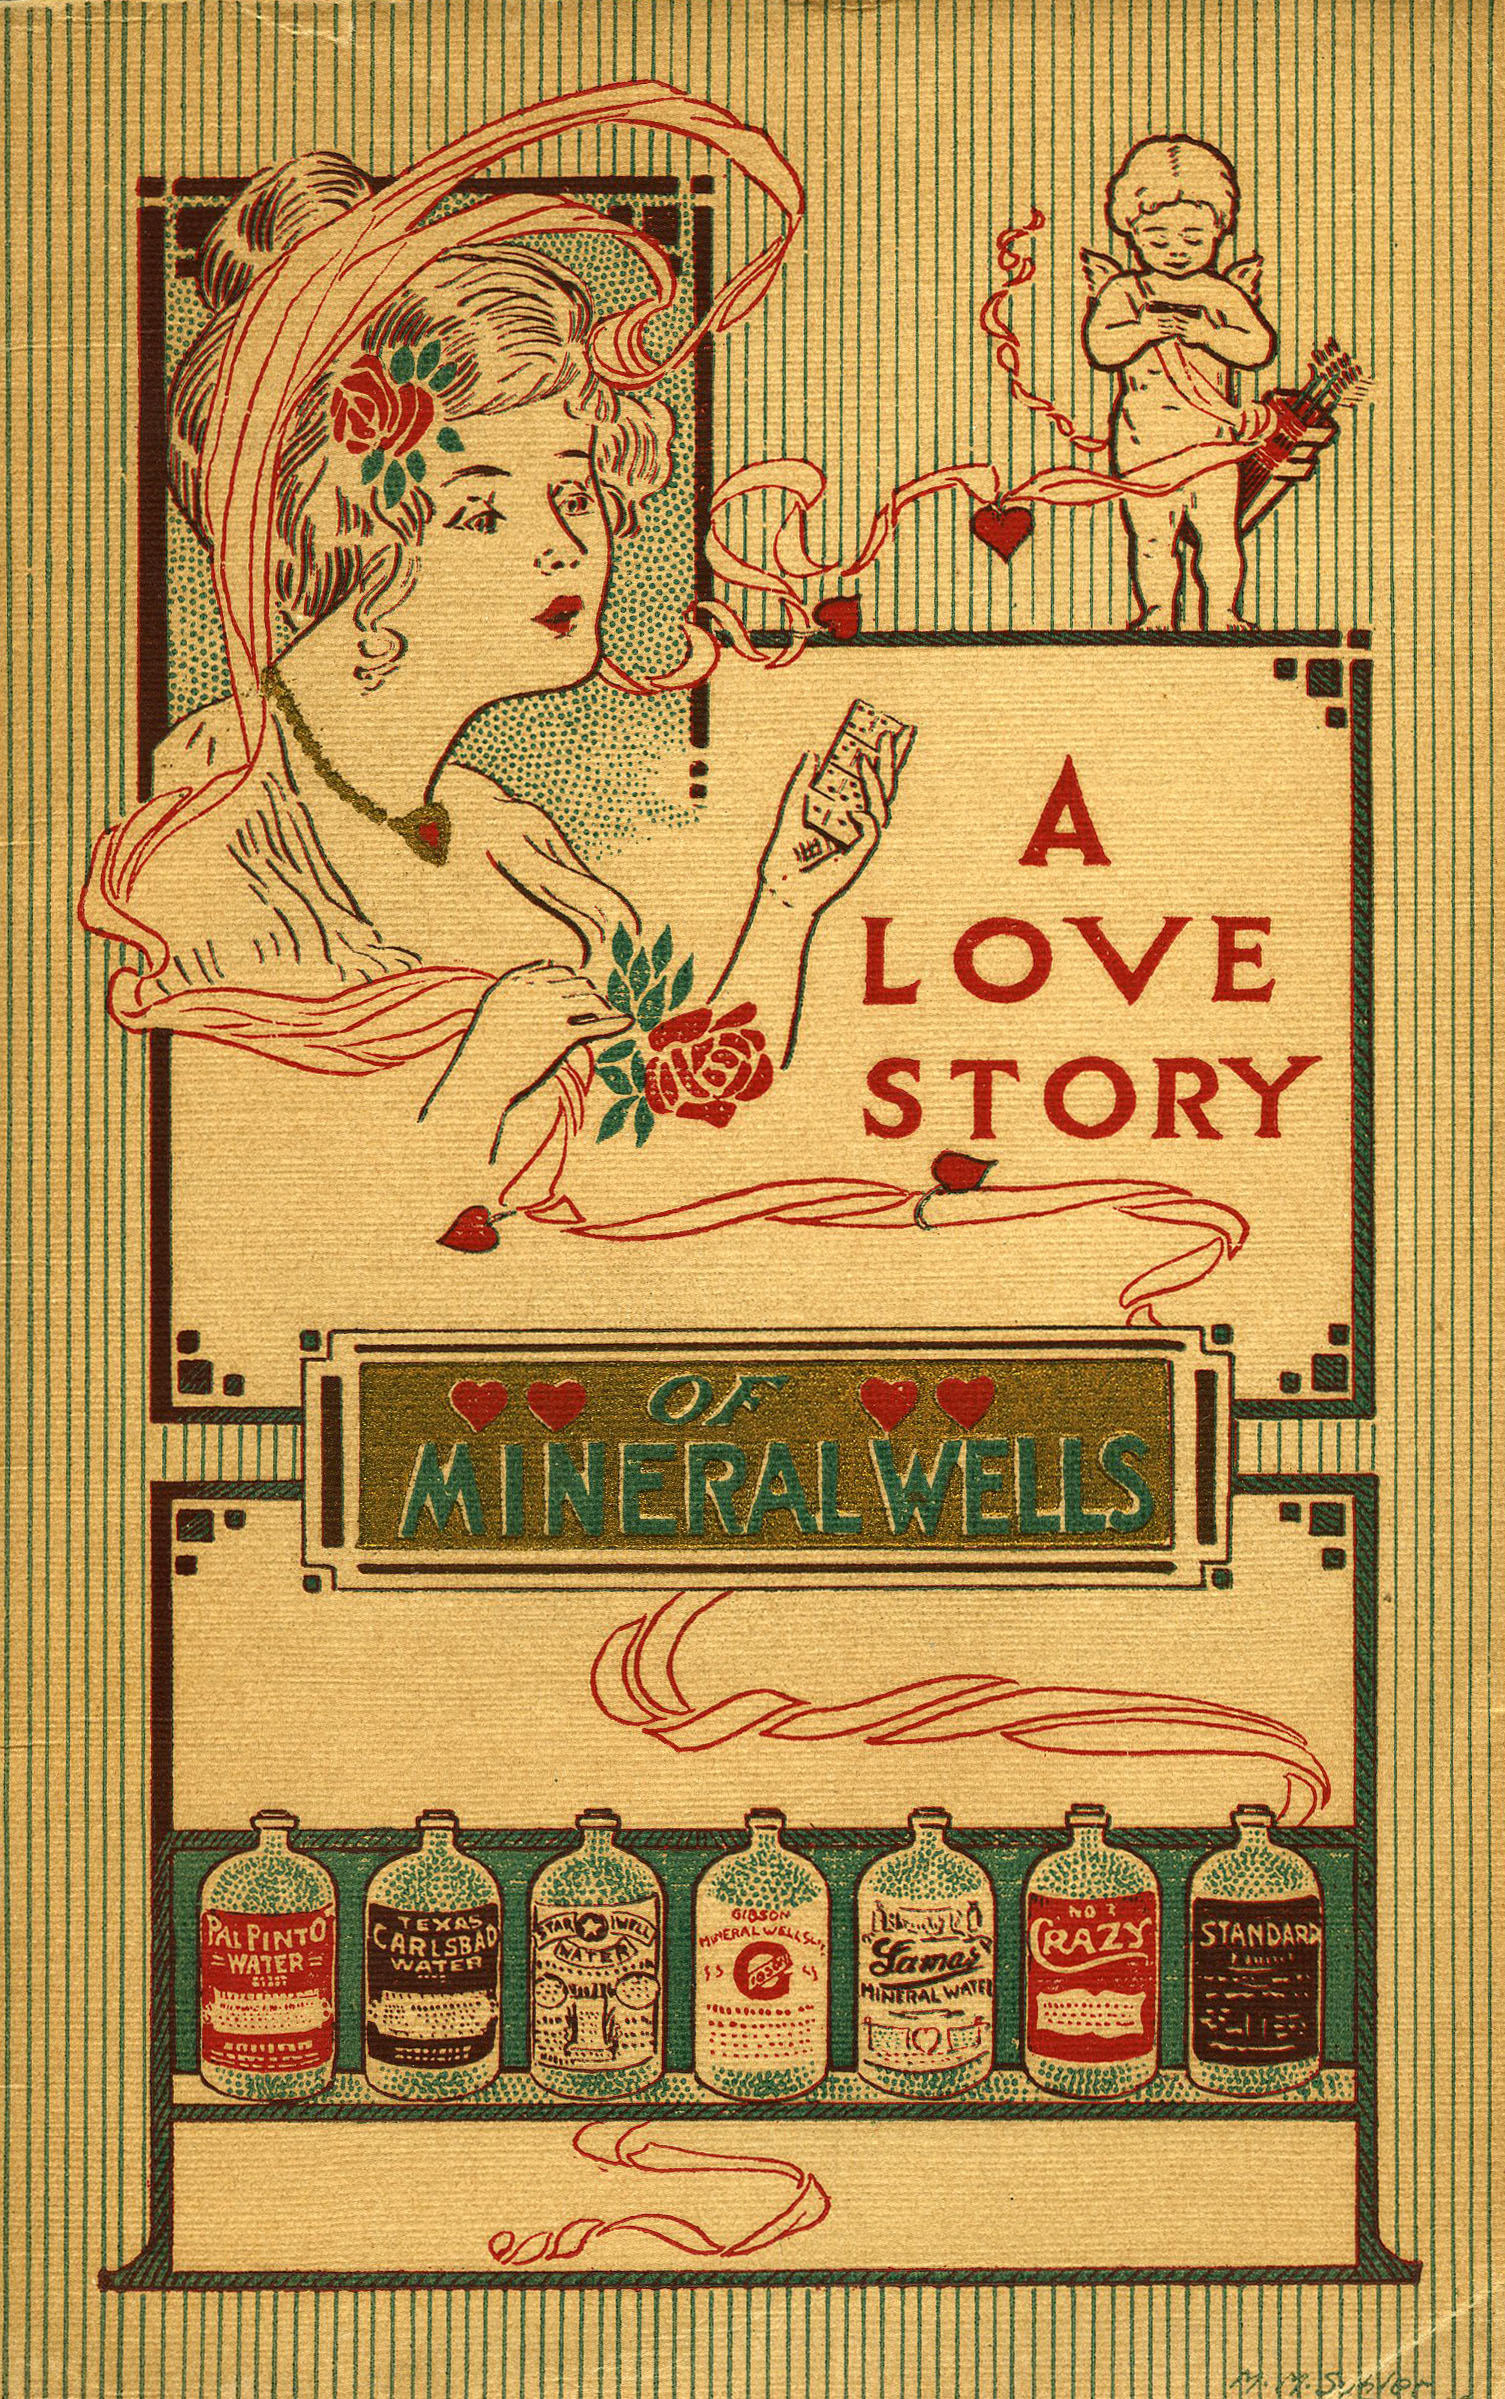 Cover of 'A Love Story of Mineral Wells'